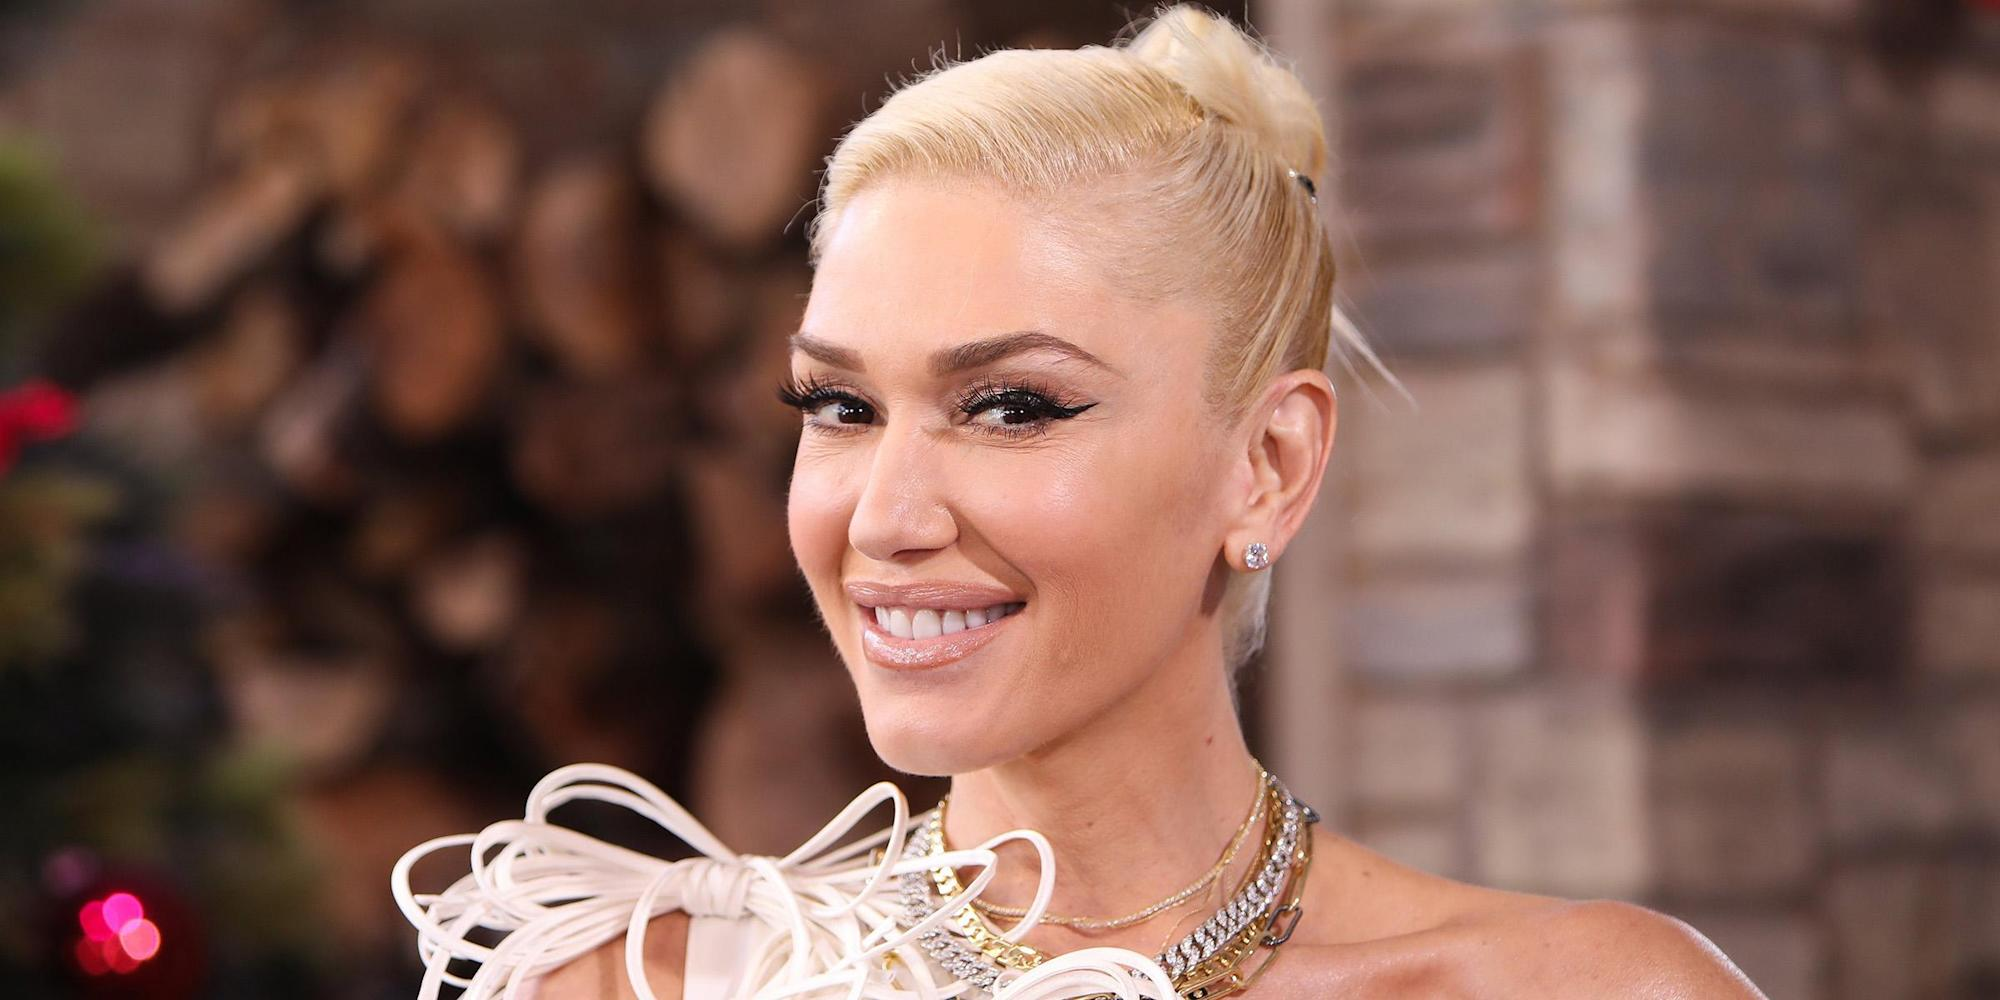 Gwen Stefani shares pic with son Apollo on 7th birthday — and fans love his hair - Yahoo News